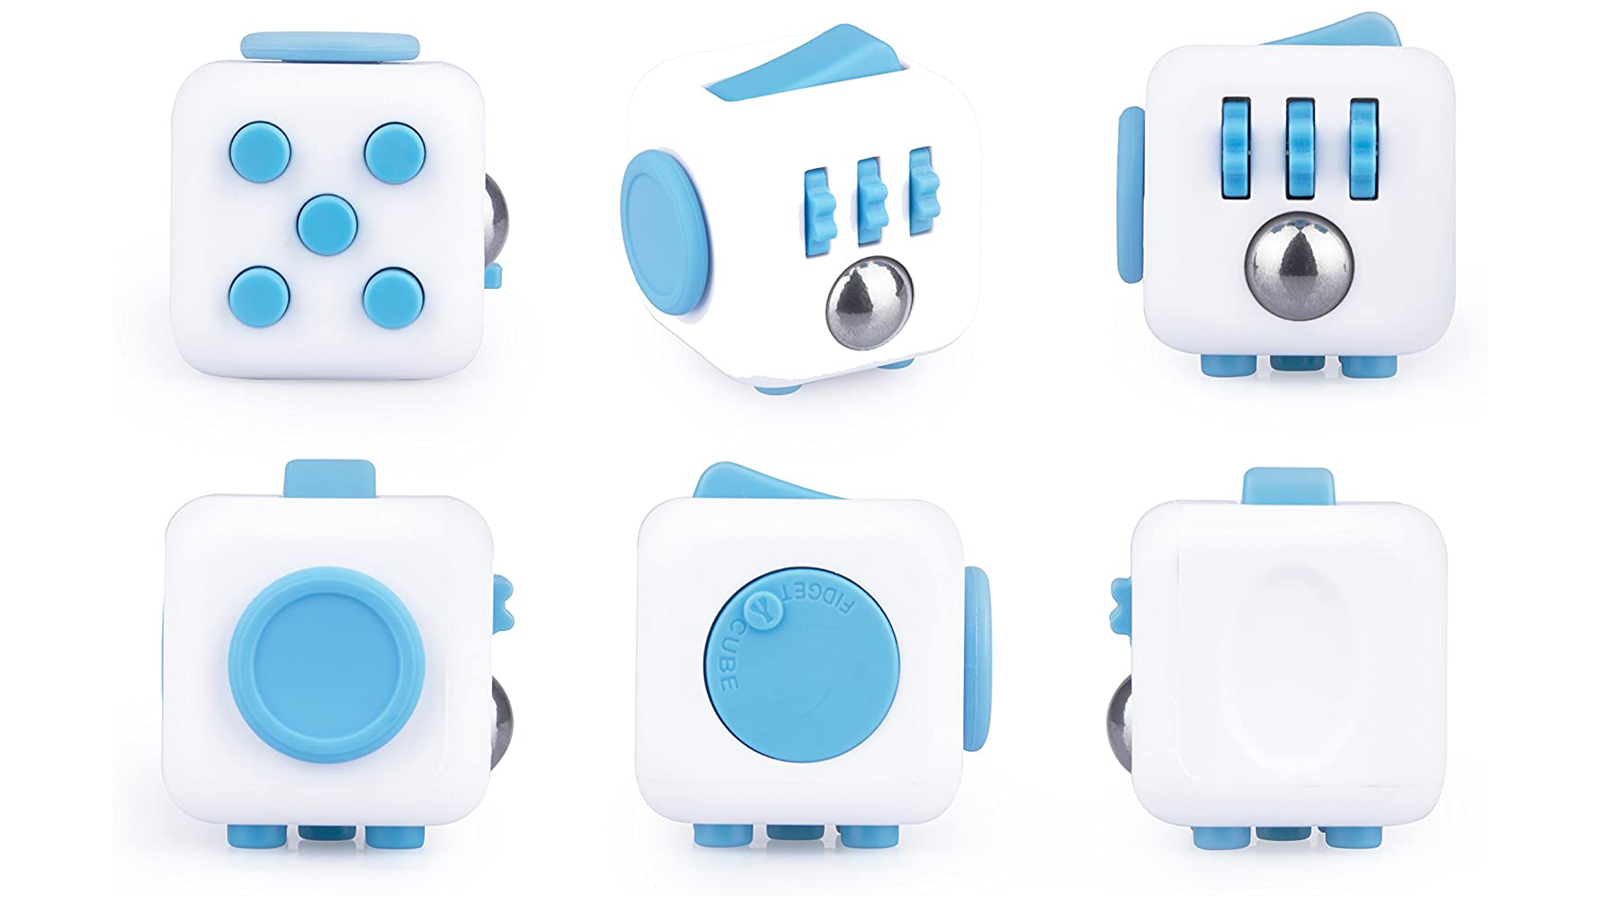 Antsy Labs fidget cube has six activities total each side with its own for fidgety hands